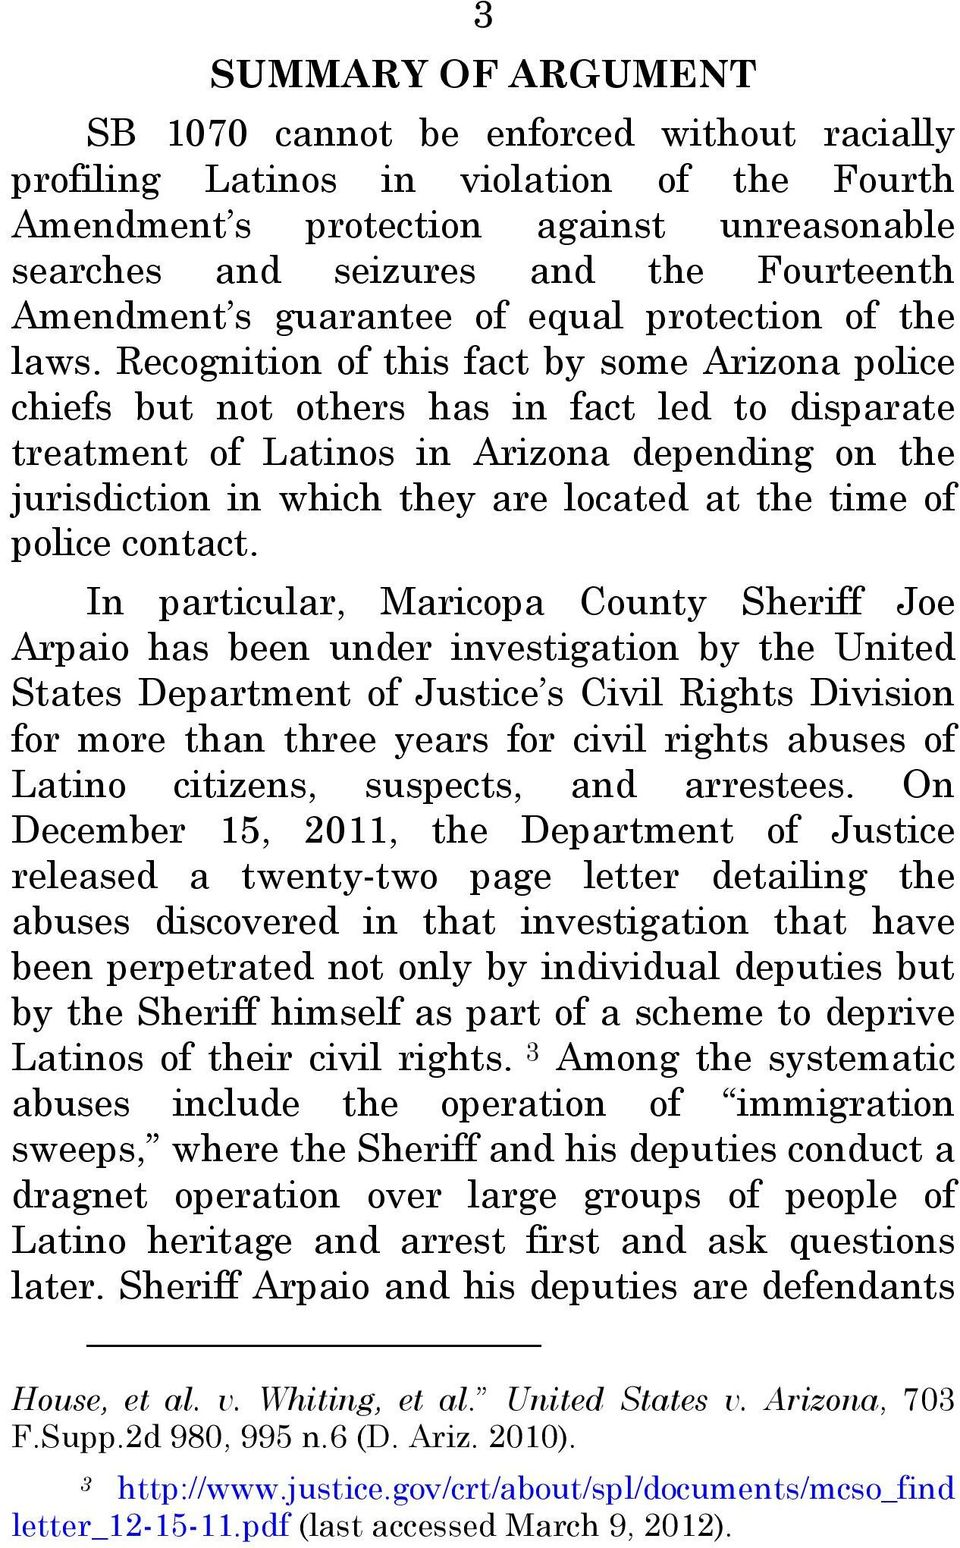 Recognition of this fact by some Arizona police chiefs but not others has in fact led to disparate treatment of Latinos in Arizona depending on the jurisdiction in which they are located at the time